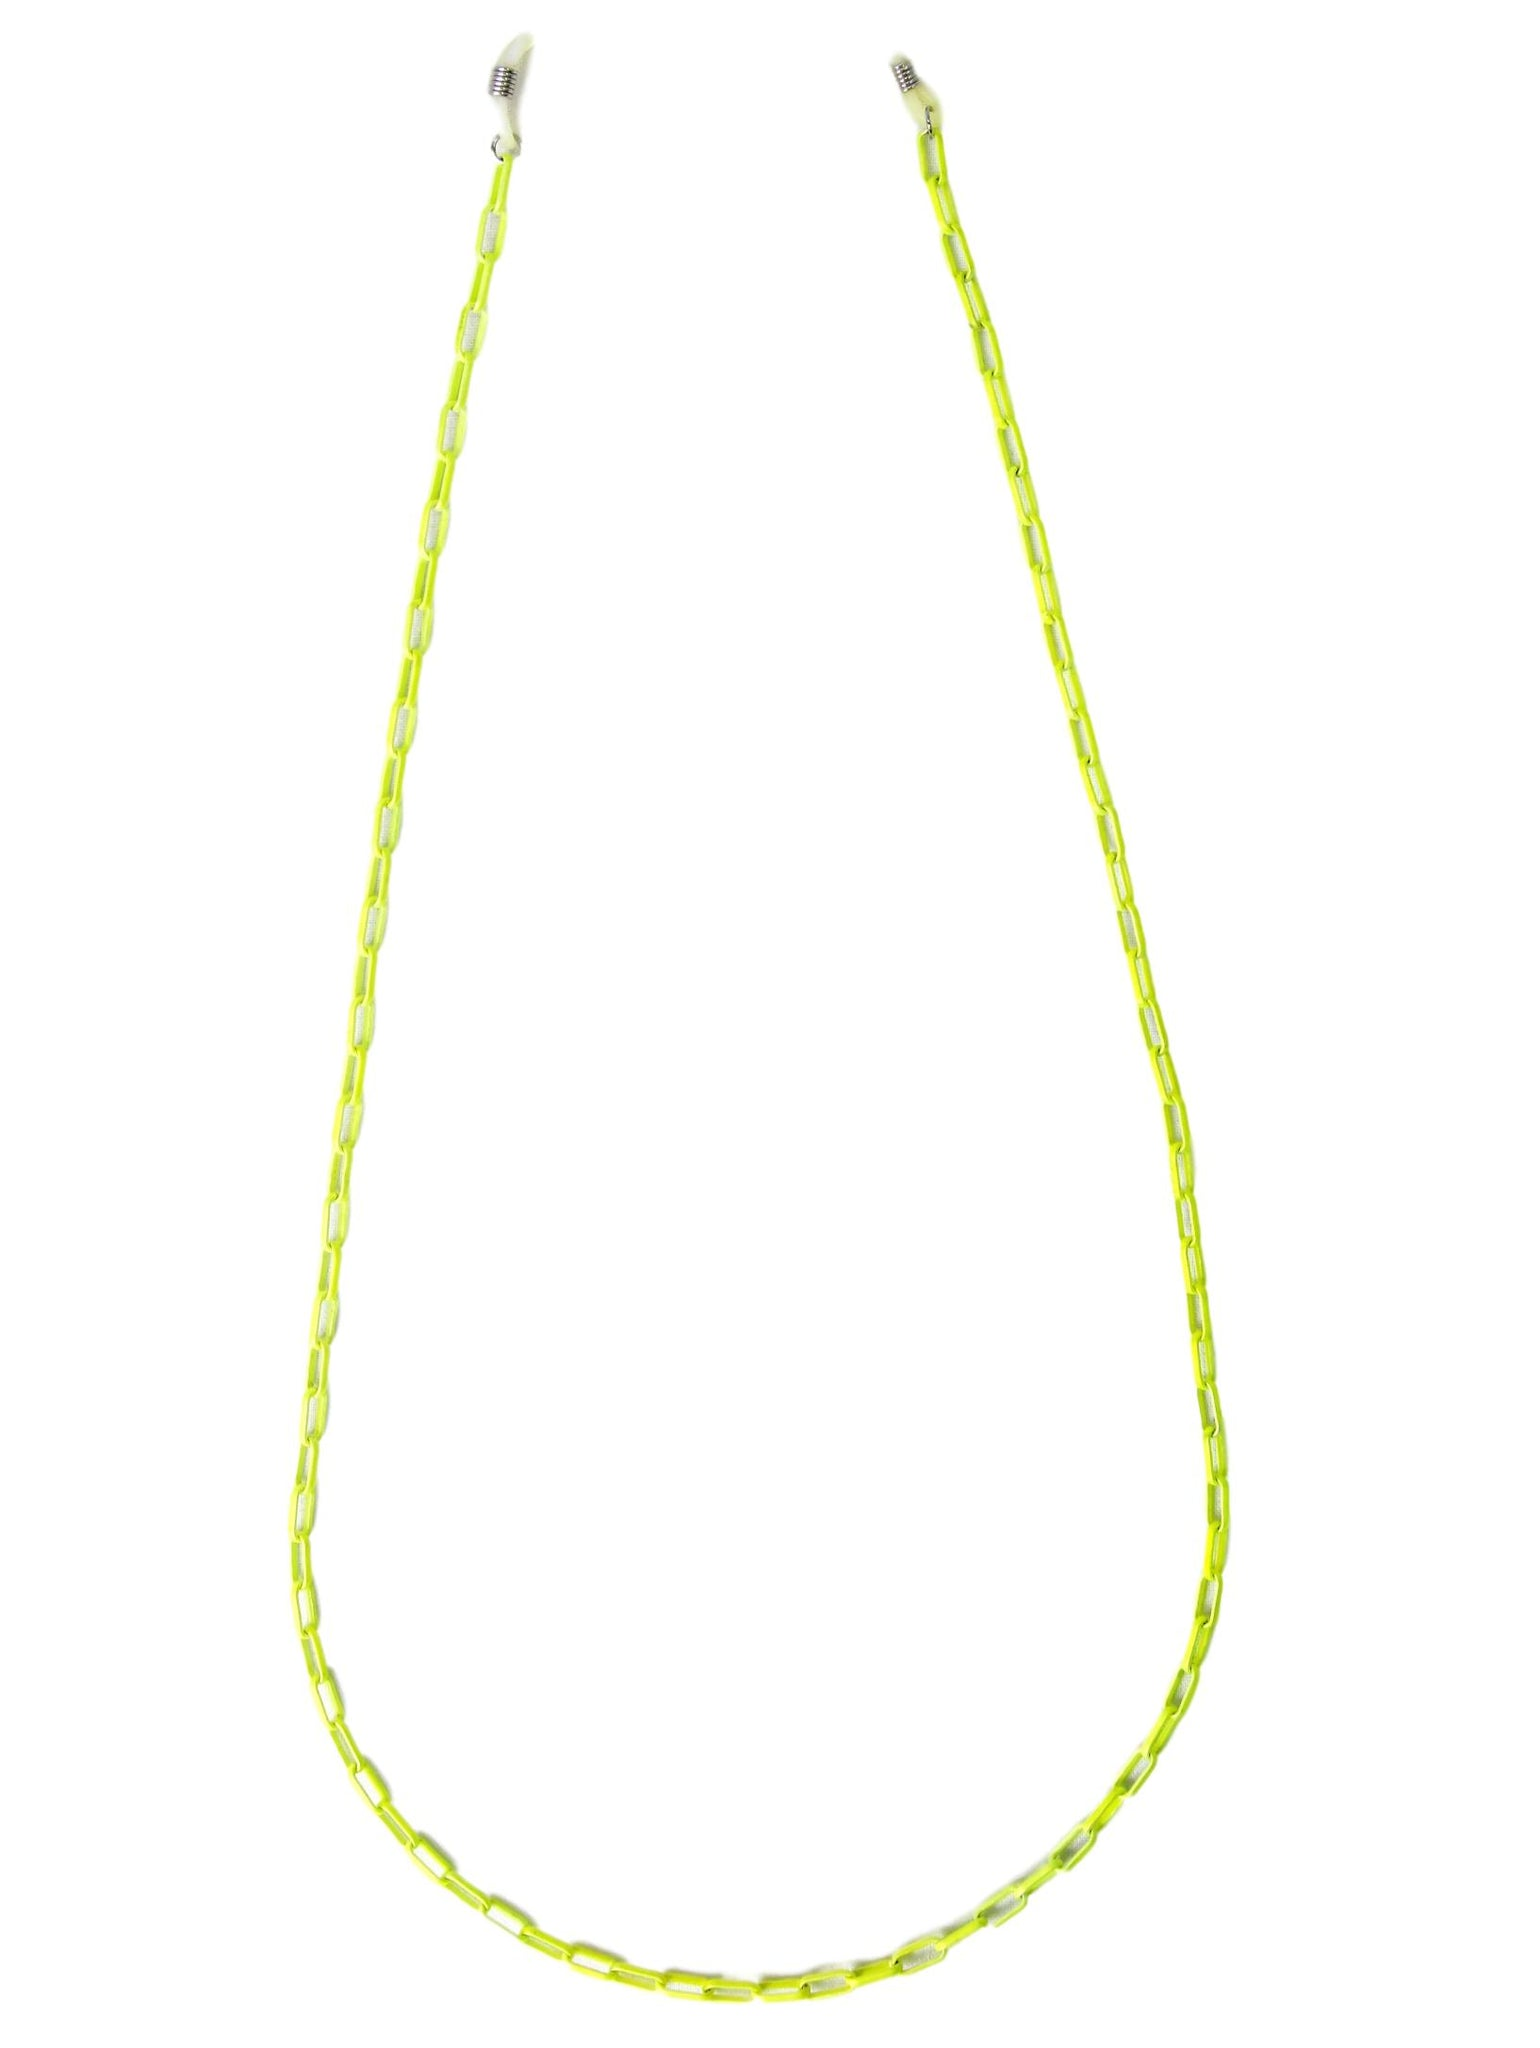 Neon Yellow Coated Sunglasses Chain